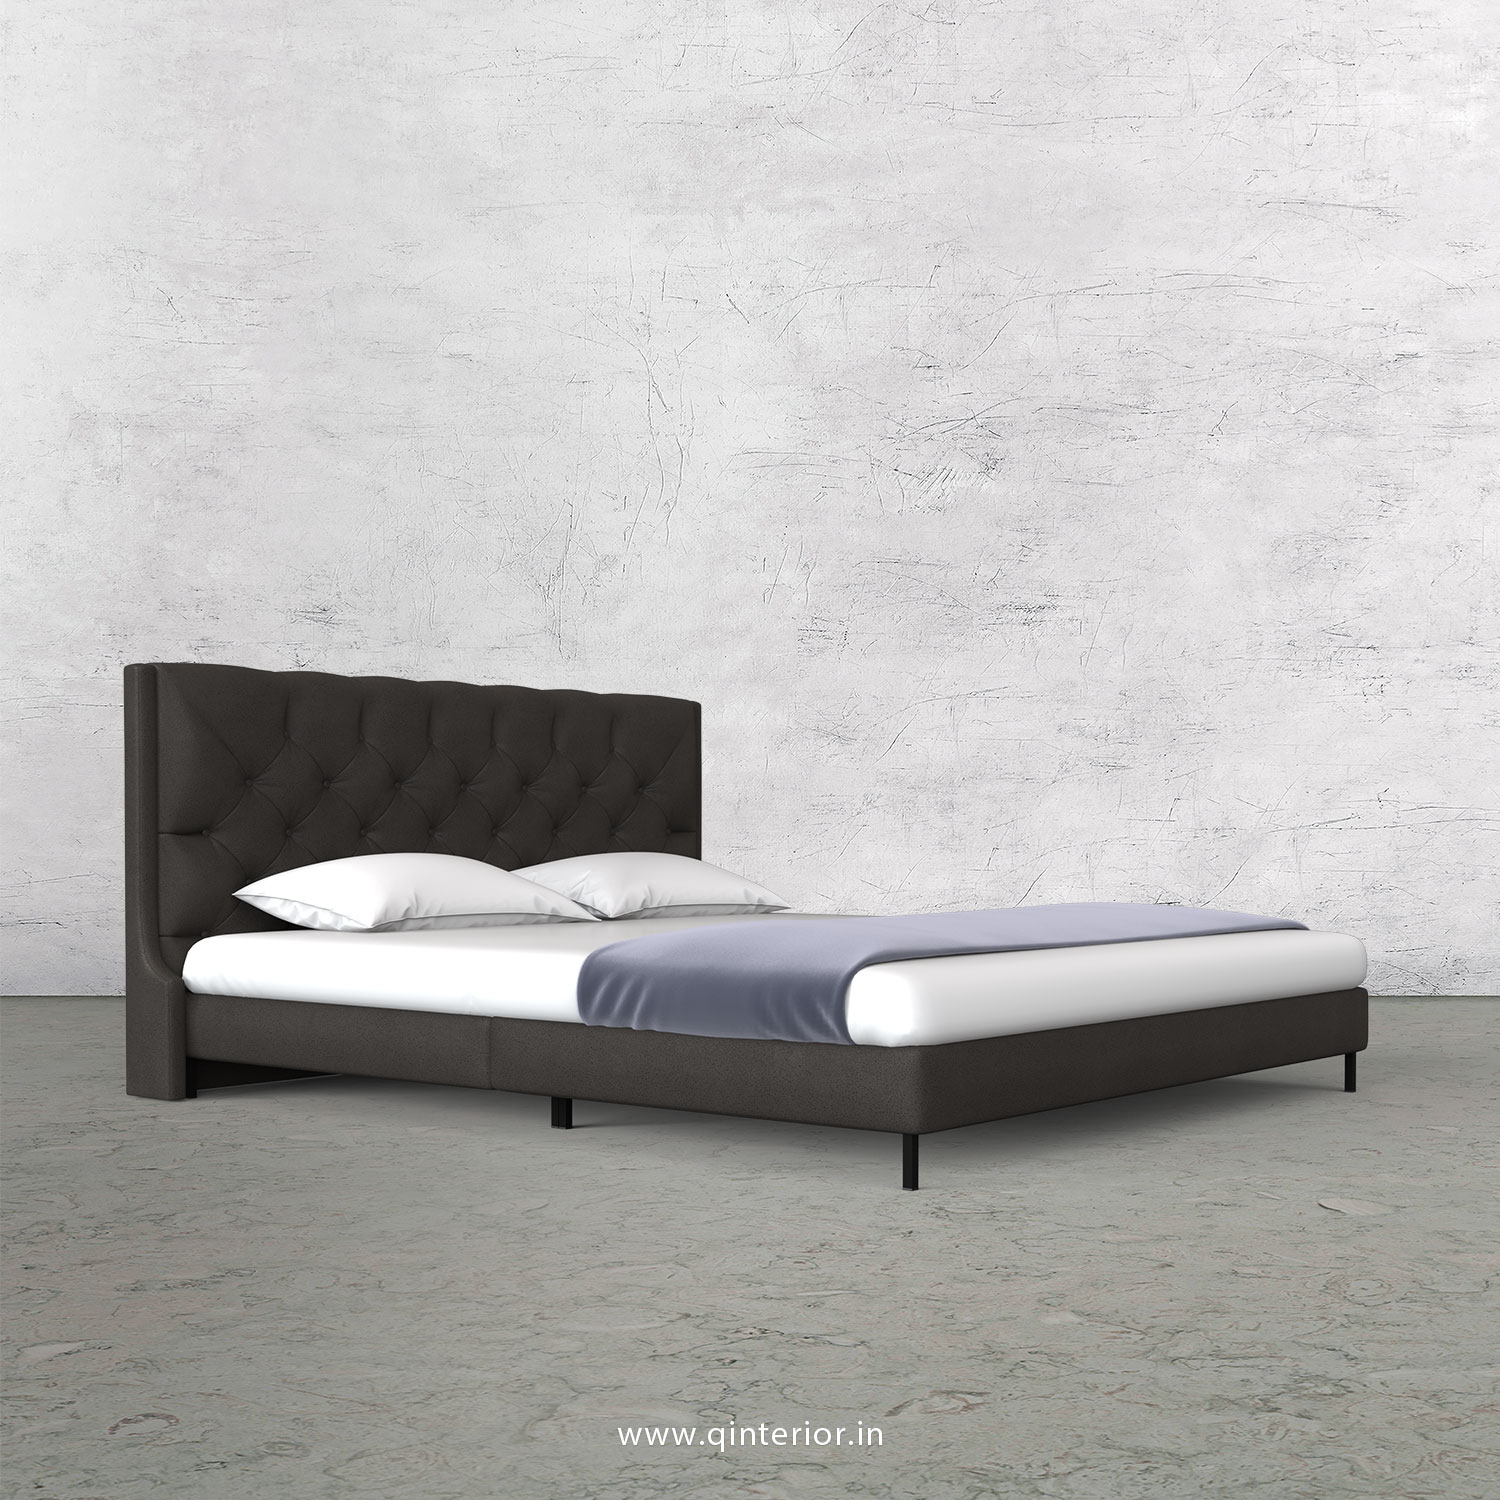 Scorpius King Size Bed in Fab Leather Fabric - KBD003 FL15